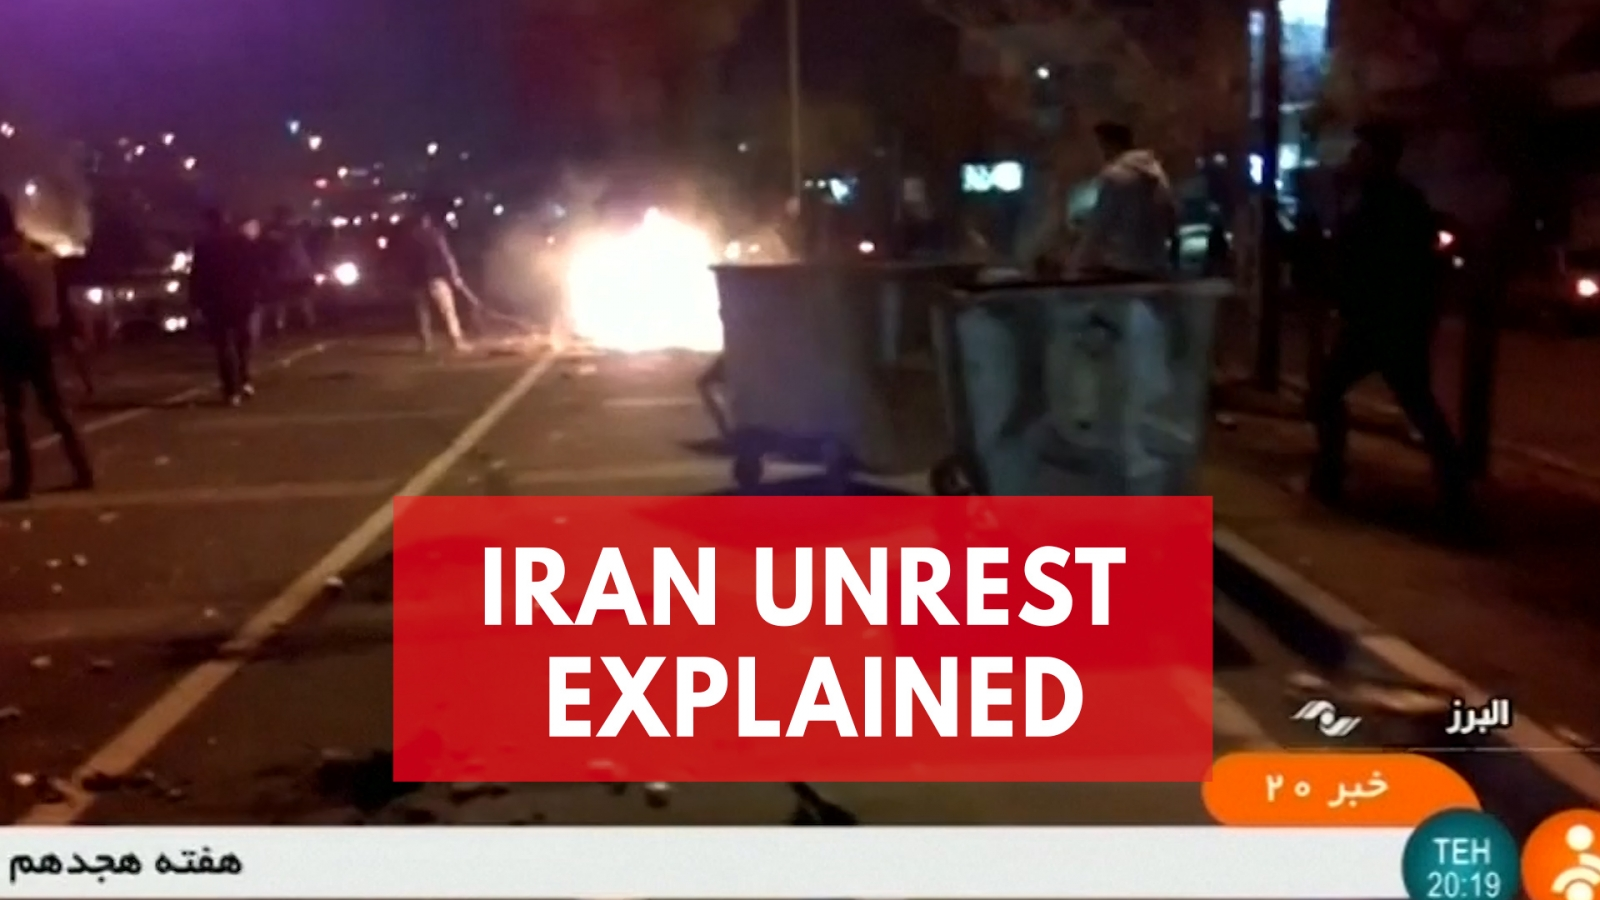 iran-protests-explained-death-toll-mounts-as-anti-government-rallies-reach-day-5